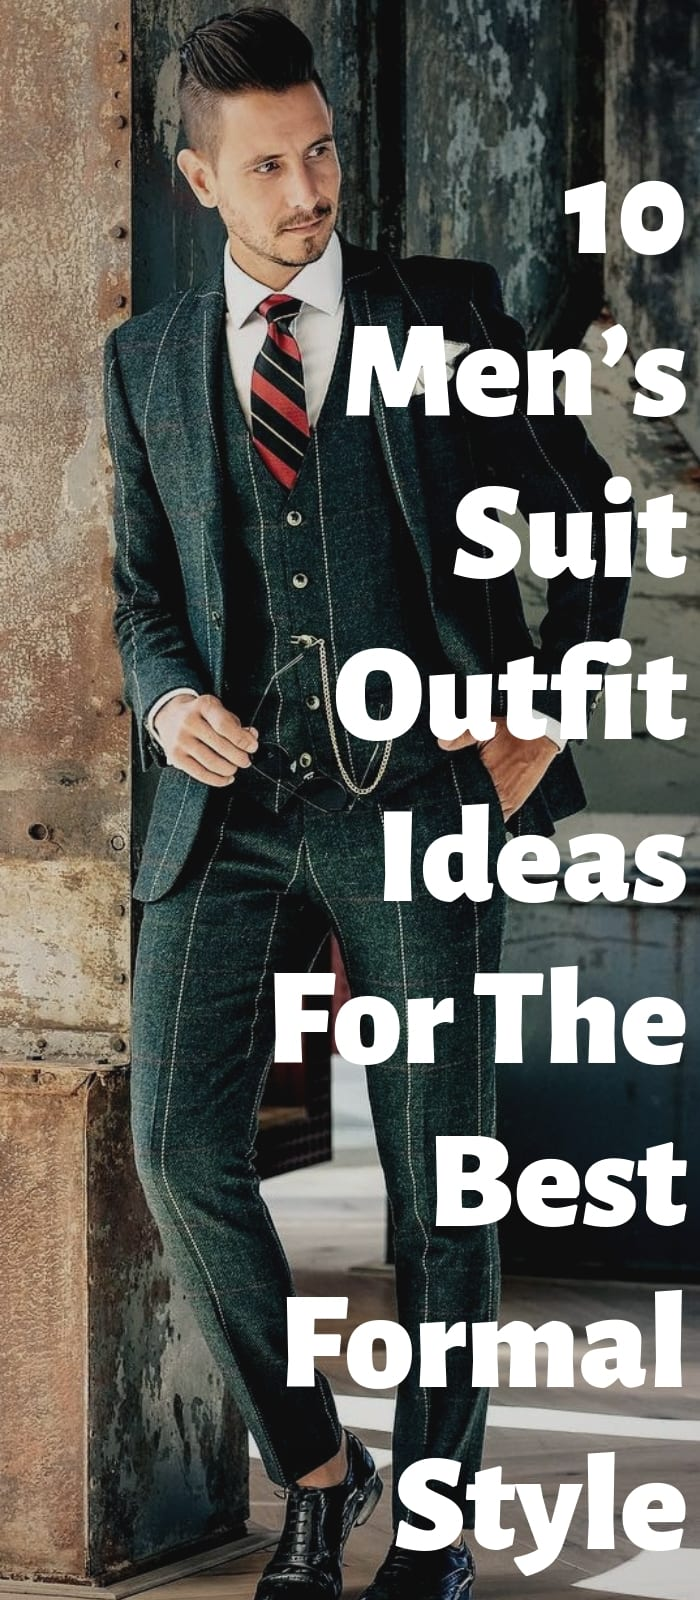 10-Men's-Suit-Outfit-Ideas-For-The-Formal-Style-